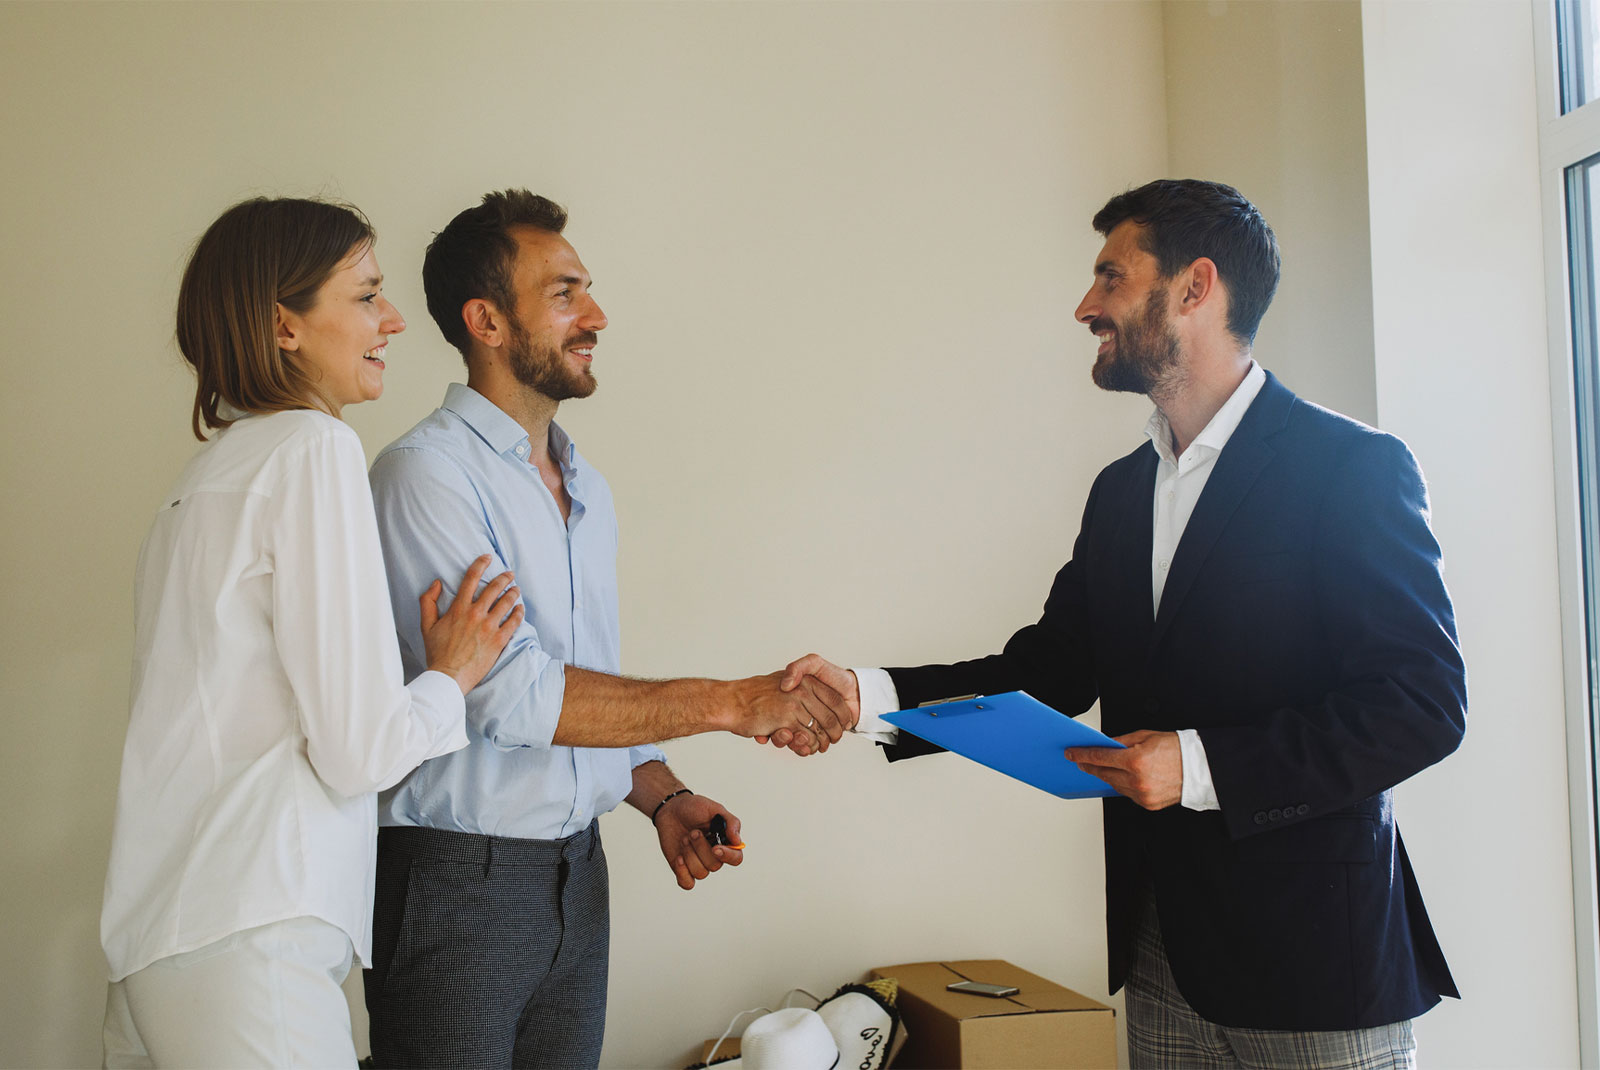 happy couple shaking hand with realtor who has blue folder